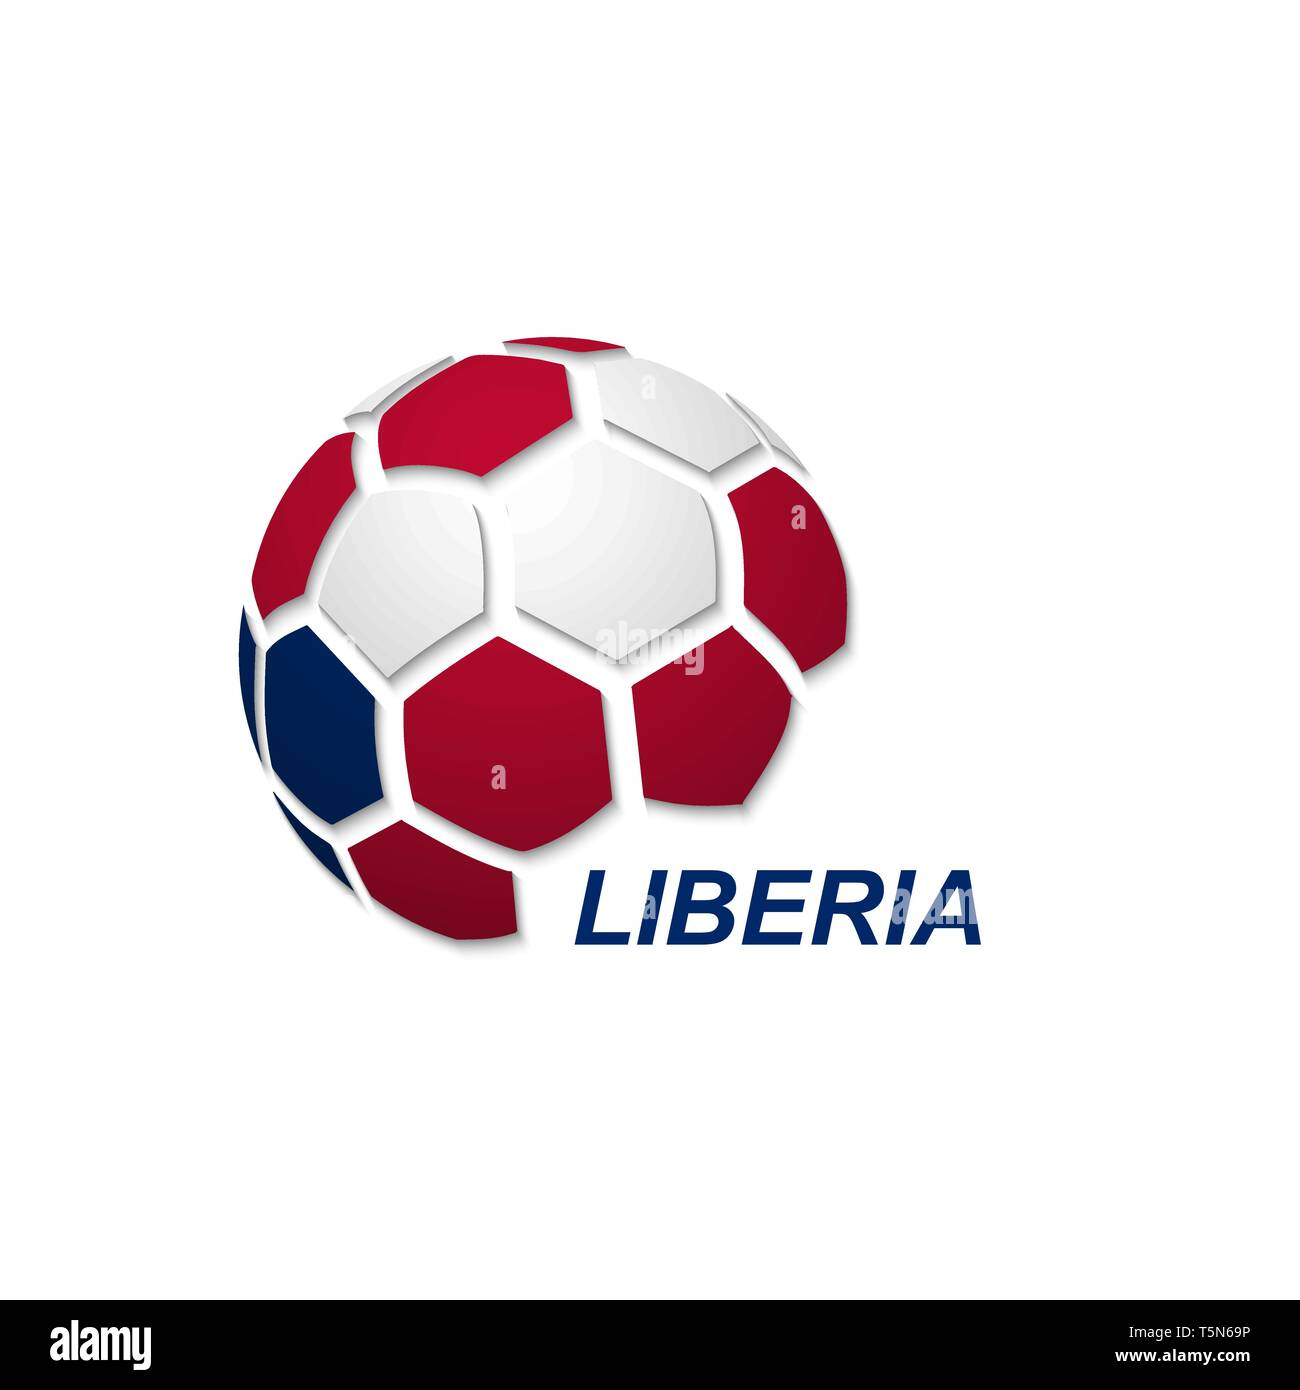 Football banner. Vector illustration of abstract soccer ball with Liberia national flag colors - Stock Image